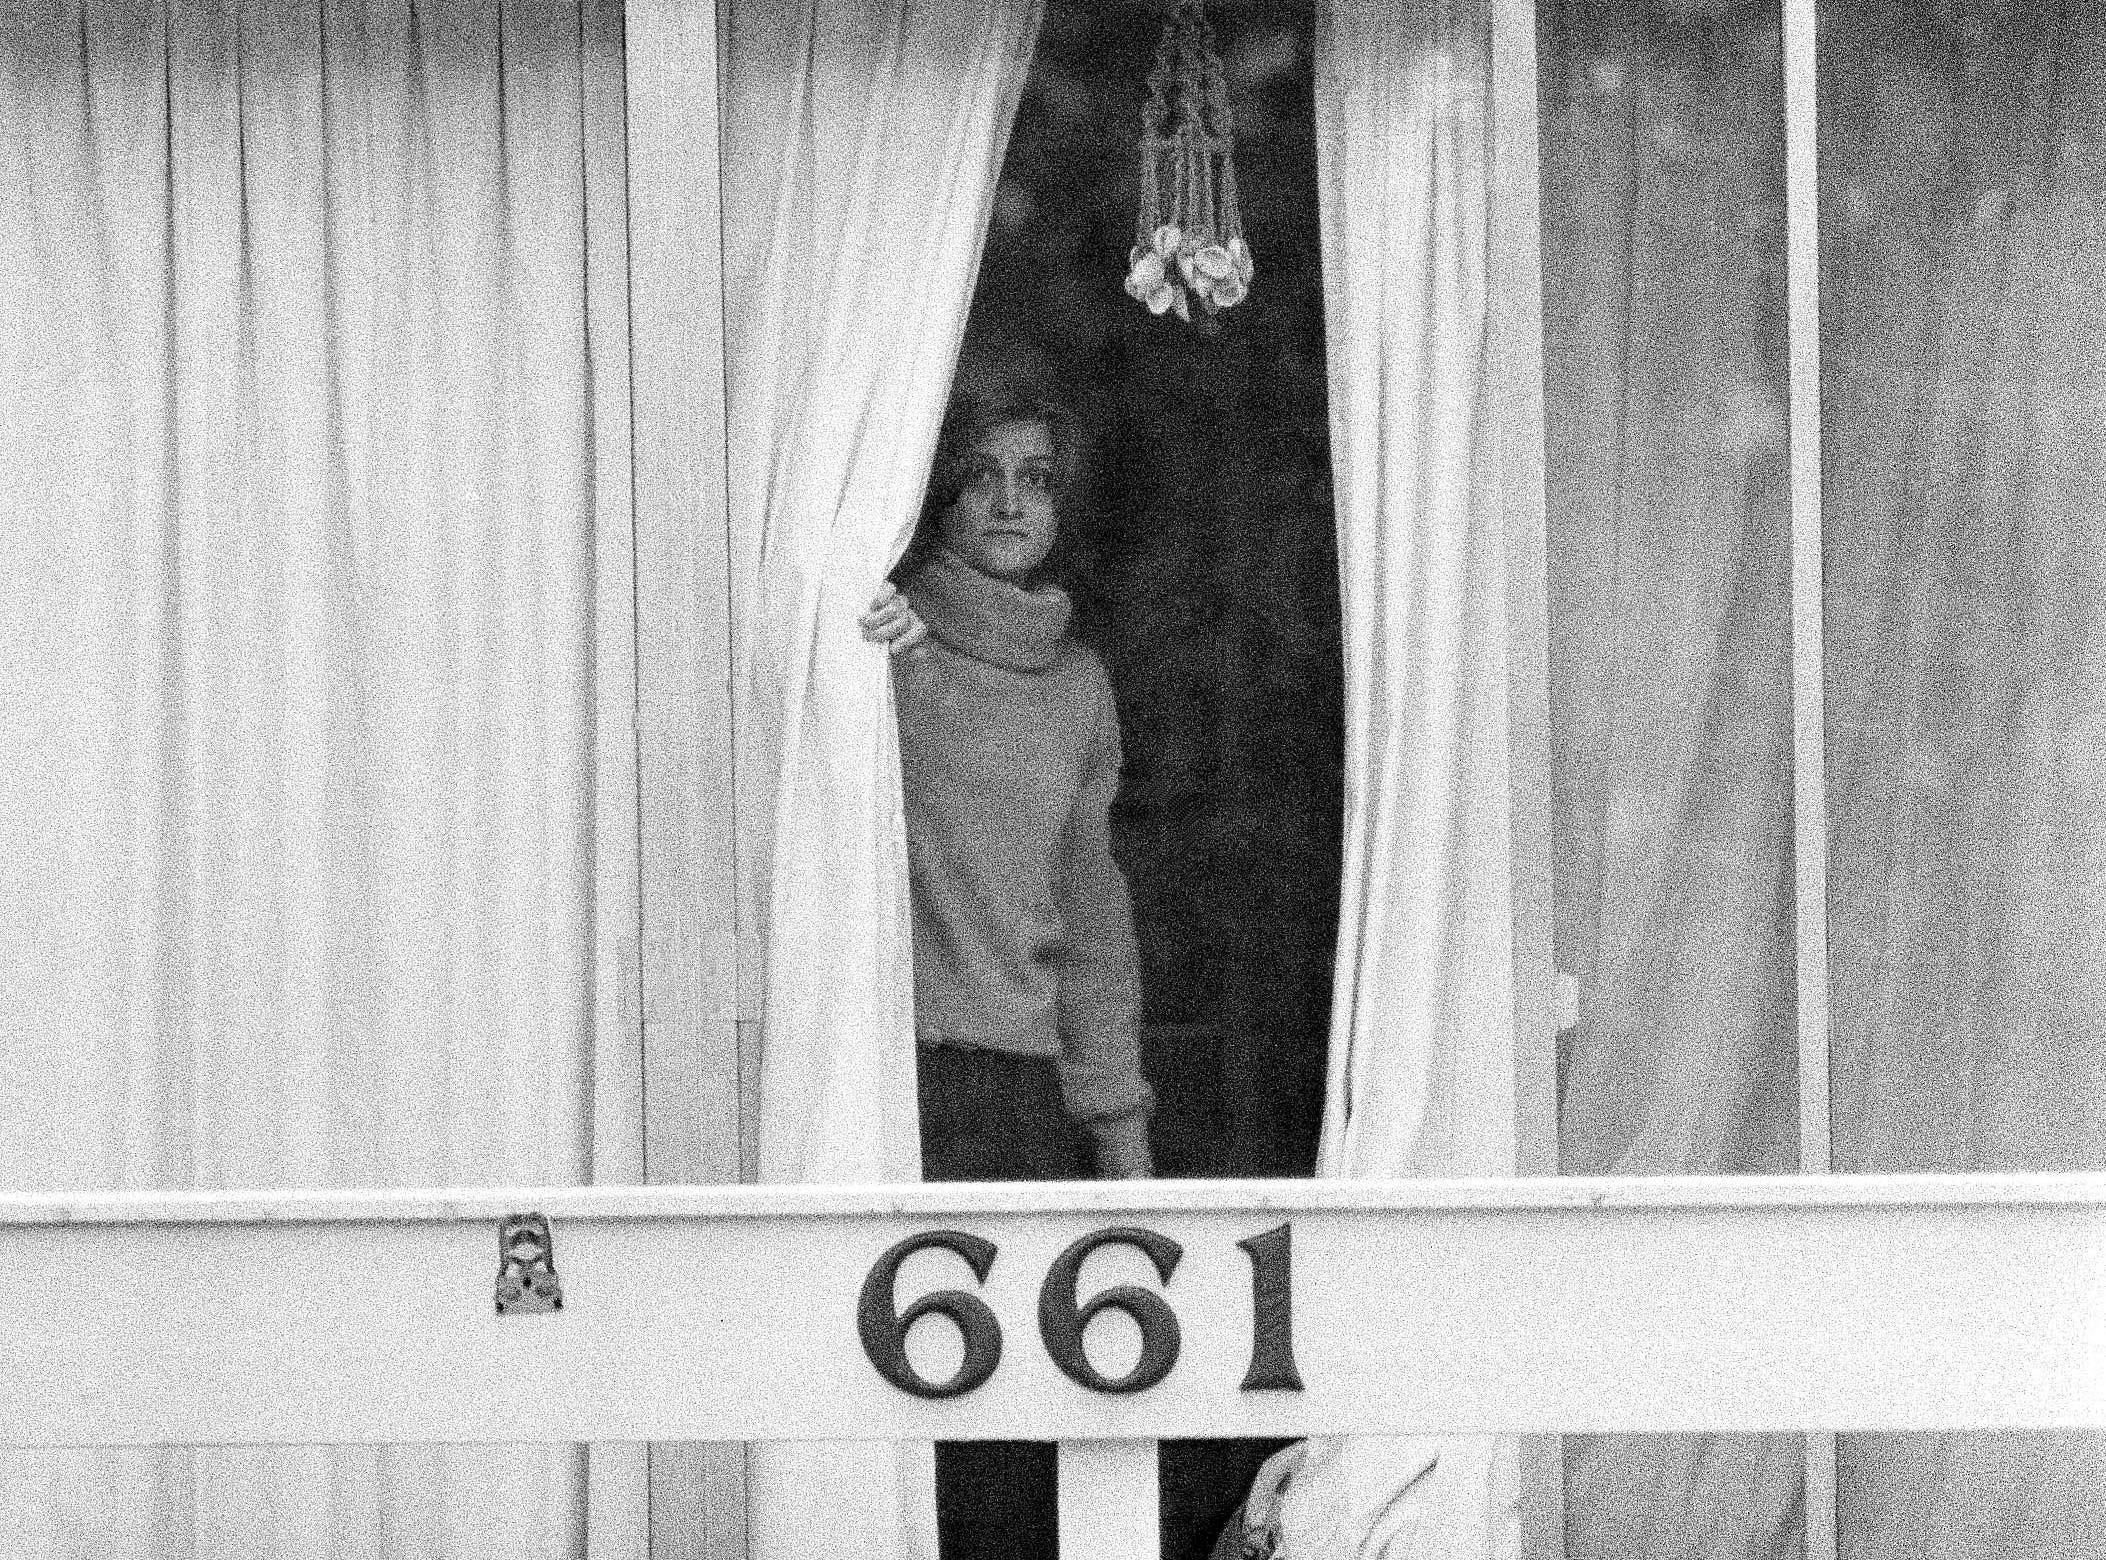 An unidentified woman peers through drapes on the 2nd story balcony of the Chi Omega sorority house at Florida State University in Tallahassee, Fla., Jan. 15, 1978. Two sorority sisters, Margaret Bowman and Lisa Levy, were brutally beaten to death with the assailant leaving 3 others injured early Sunday morning.